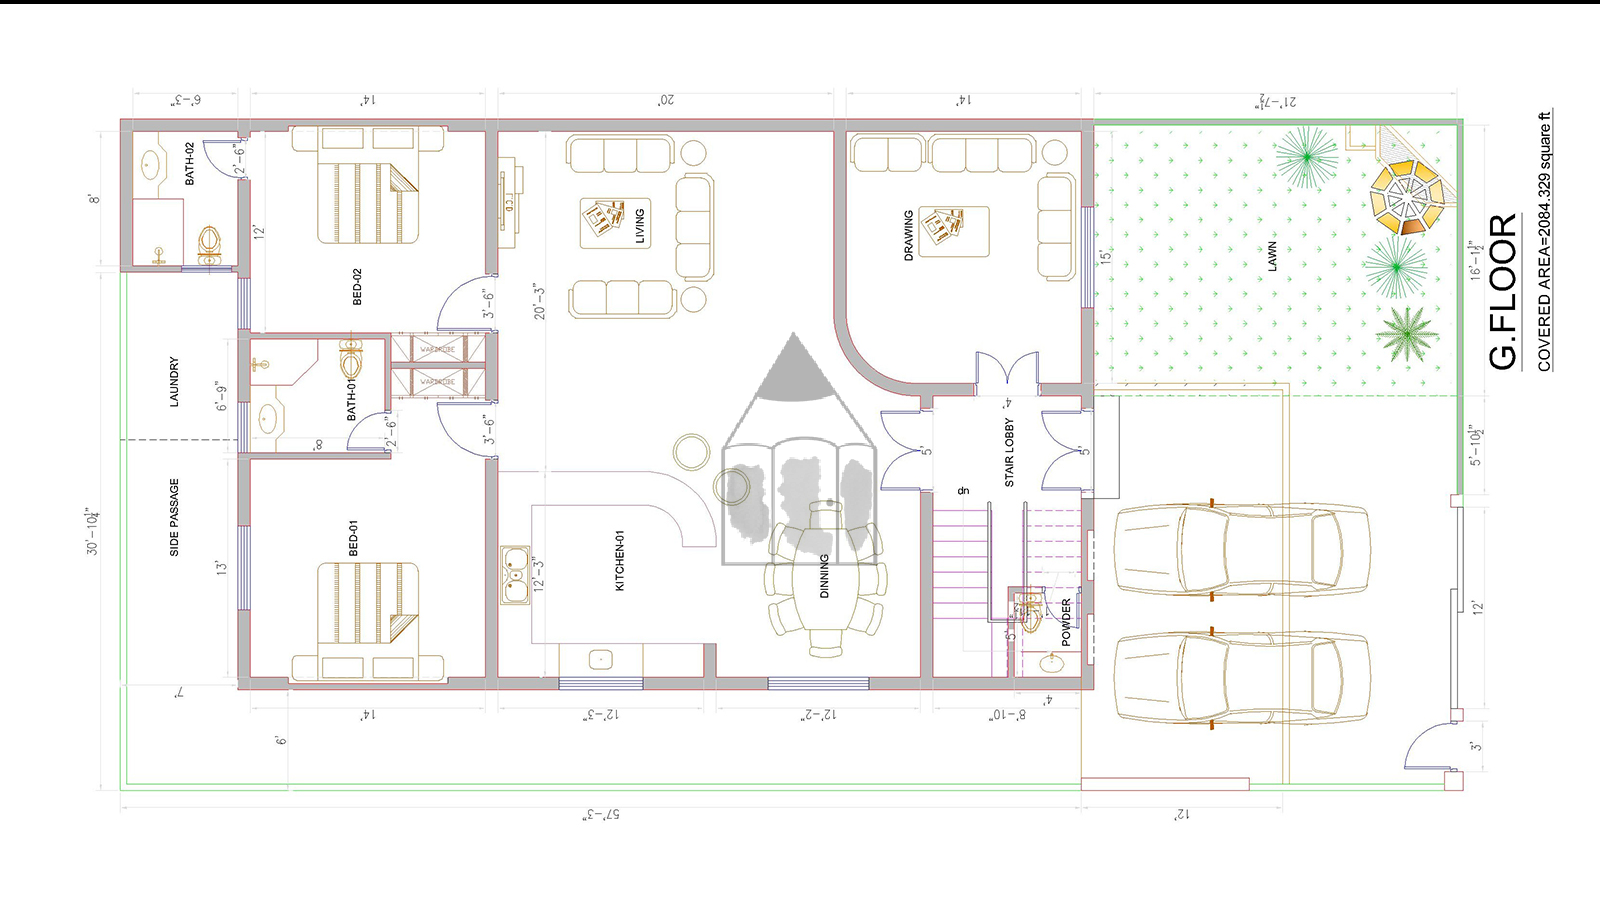 14 marla house plan for pakistani lifestyle with 40 feet front and 80 feet depth - House Plan Layouts